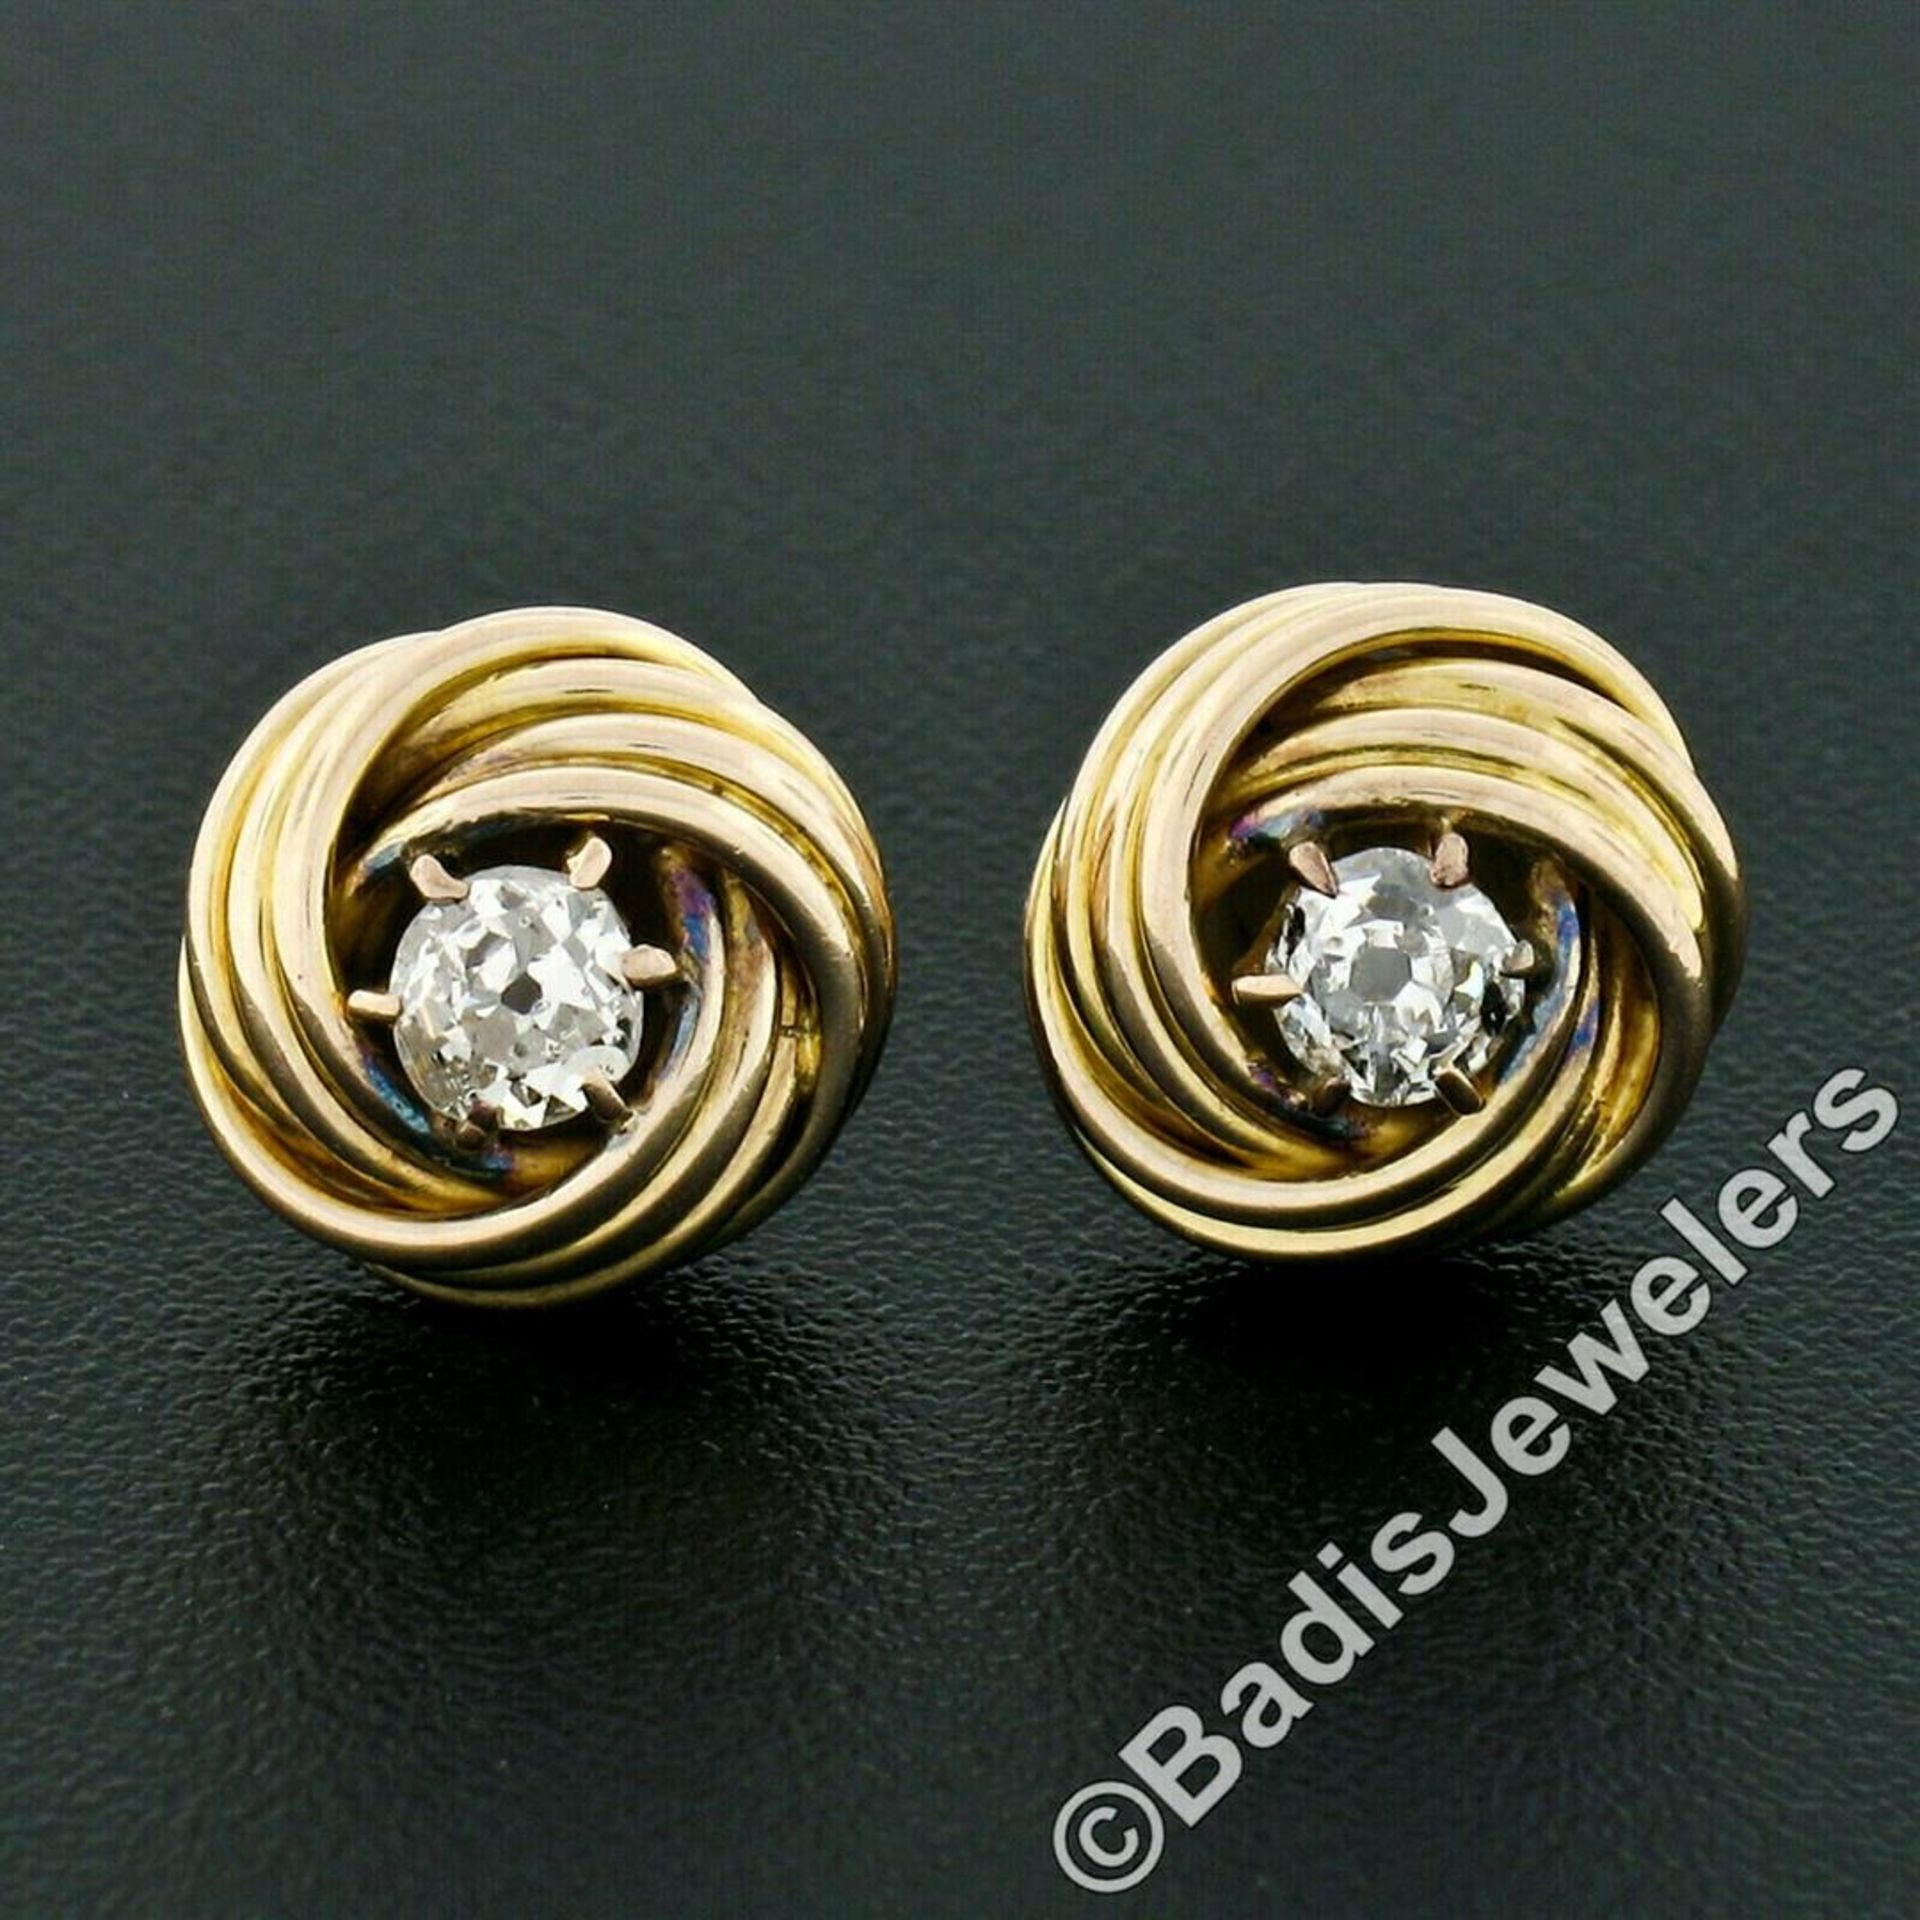 Victorian 14kt Yellow Gold 0.36 ctw Old Mine Cut Diamond Love Knot Stud Earrings - Image 2 of 5